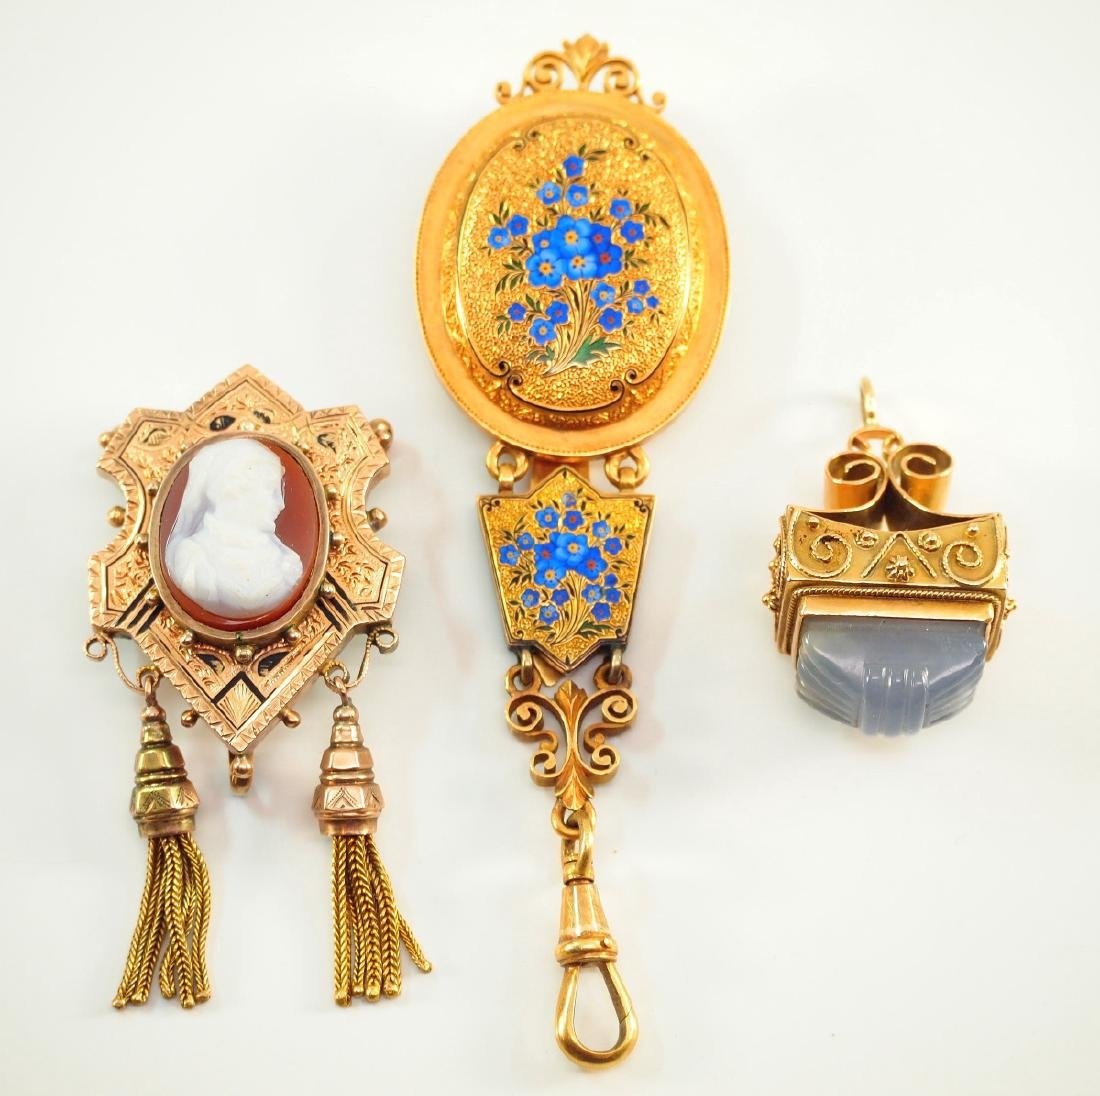 3 Victorian Gold Accessories